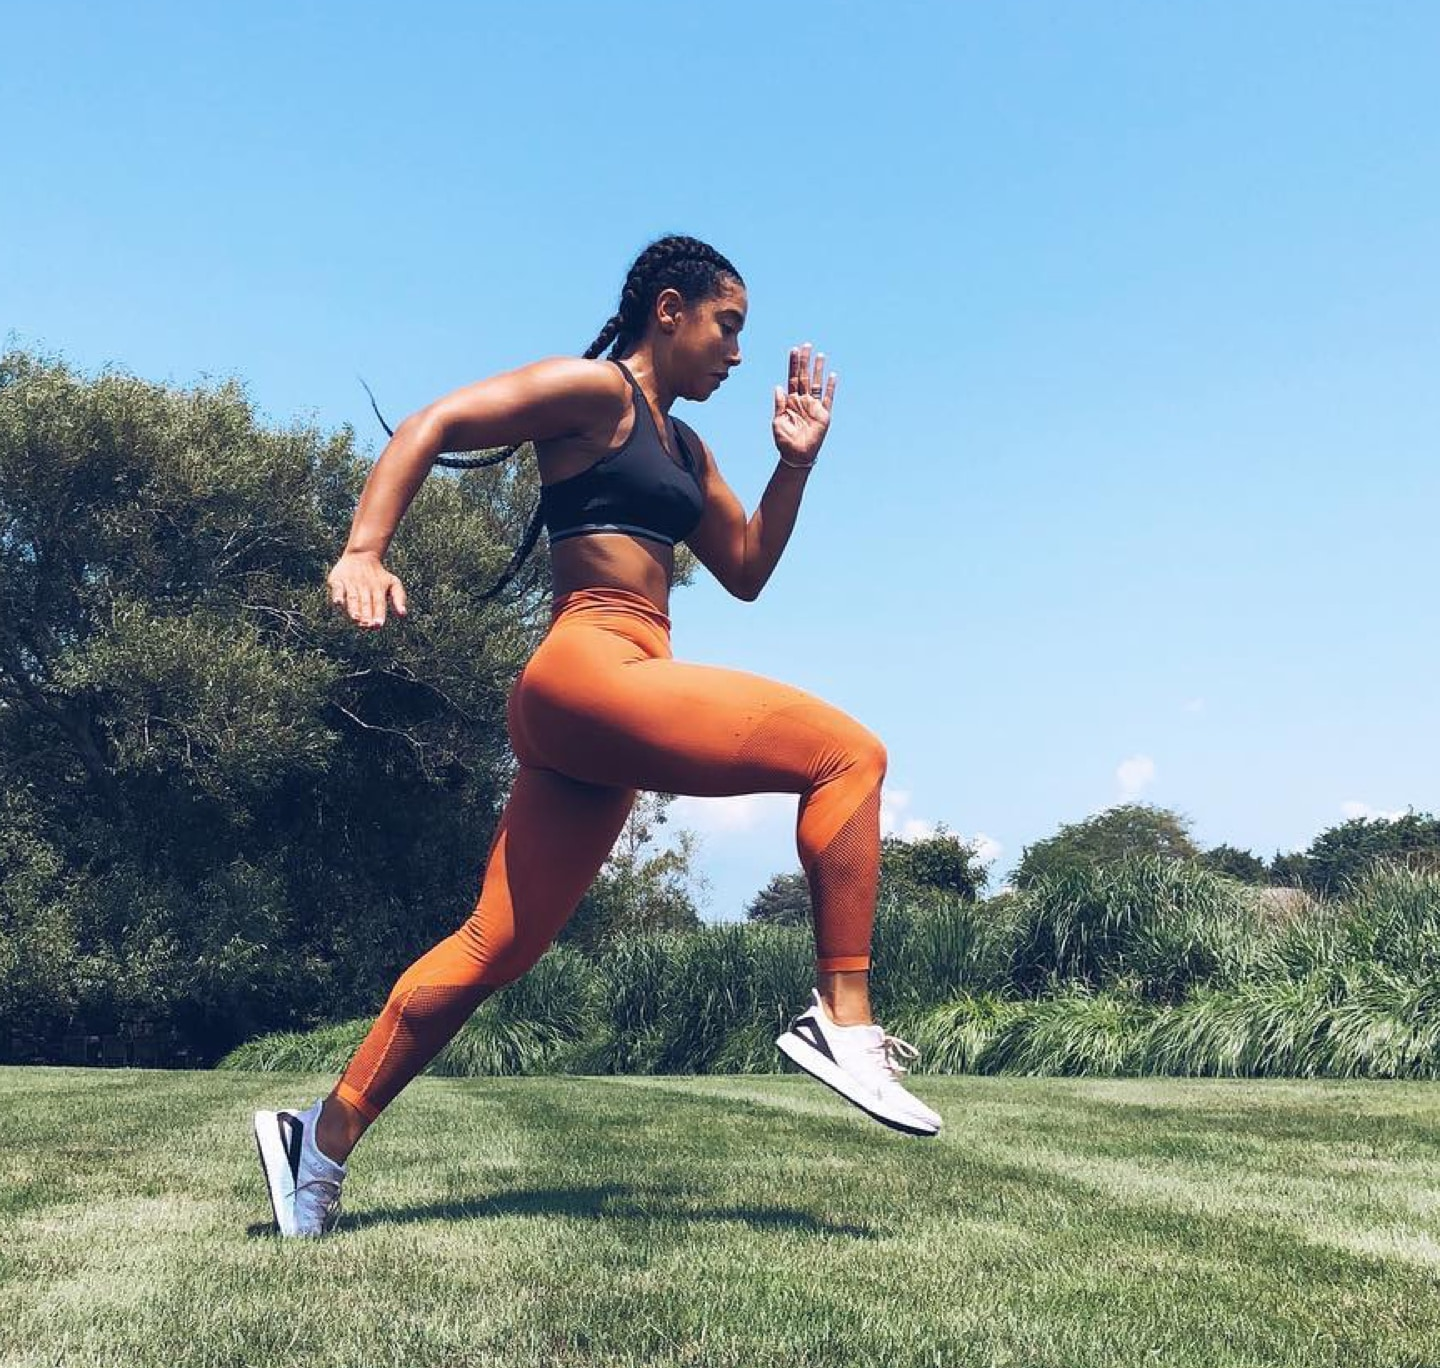 A full-body side shot of Hannah Bronfman mid-run in a park